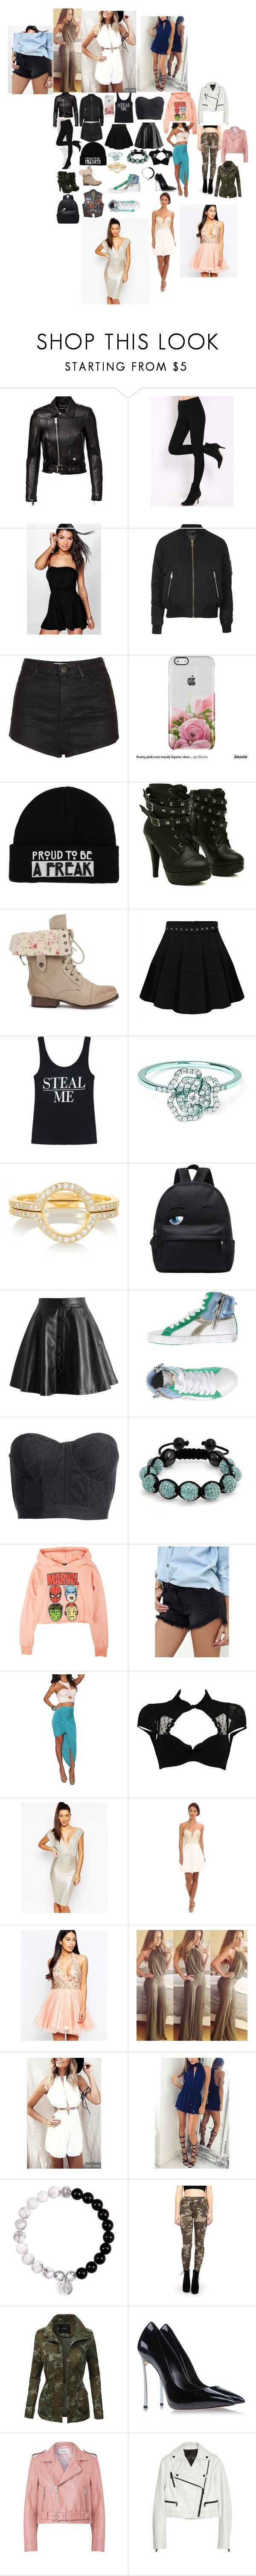 """my wardrobe 15"" by nikoleta-nicky-malik ❤ liked on Polyvore featuring Yves Saint Laurent, Boohoo, Topshop, Hot Topic, AS29, Ileana Makri, Chicwish, Diadora, Reiss and Bling Jewelry"